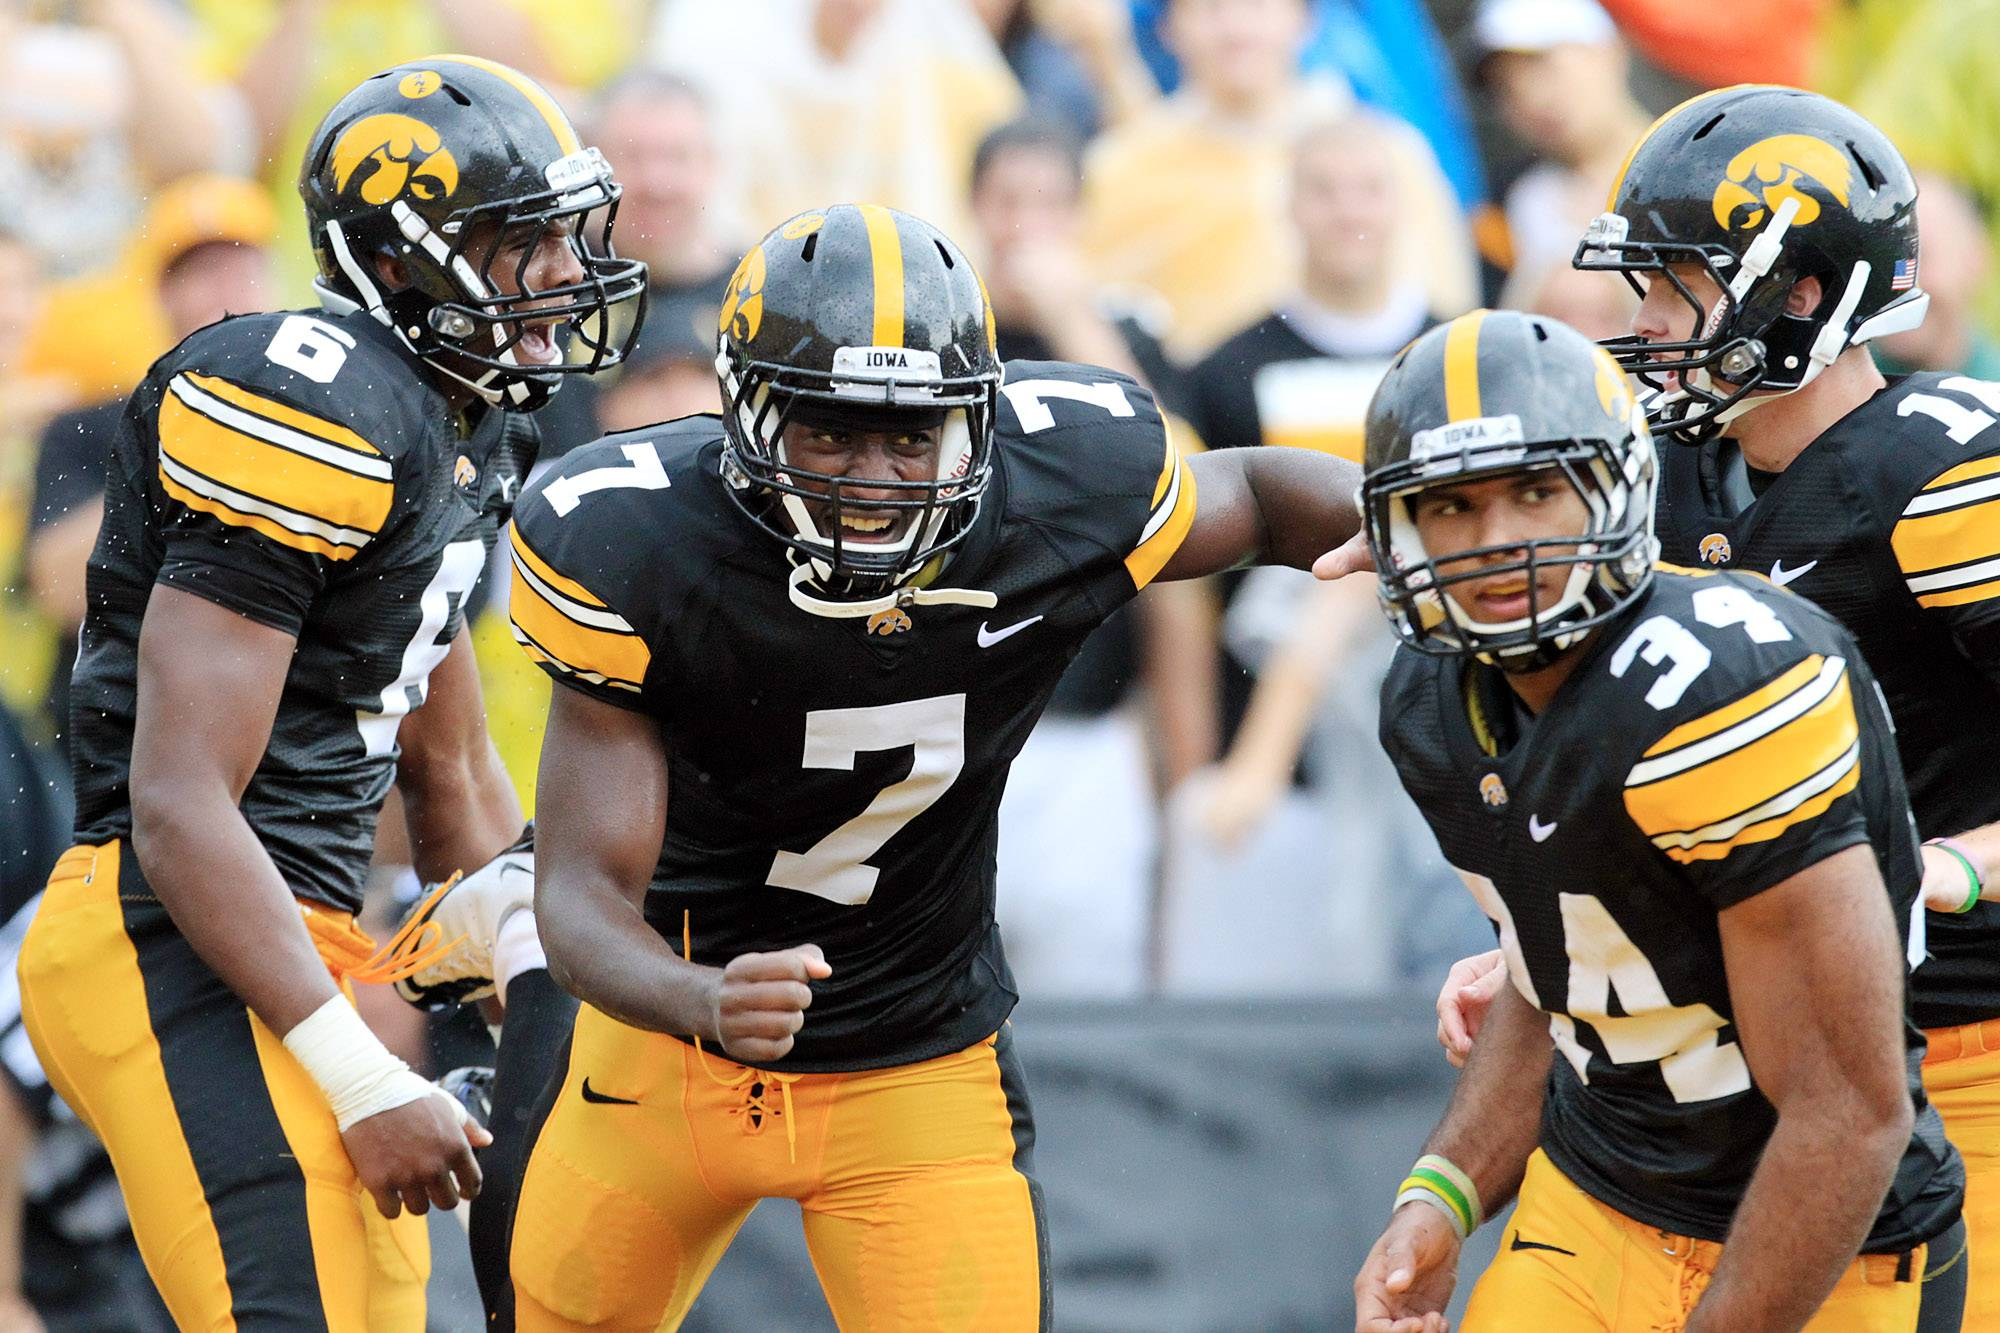 Iowa's Keenan Davis (6,), Marvin McNutt, Jr. (7), Marcus Coker (34) and James Vandenberg (16) celebrate after a long reception by Davis in the second quarter Saturday.